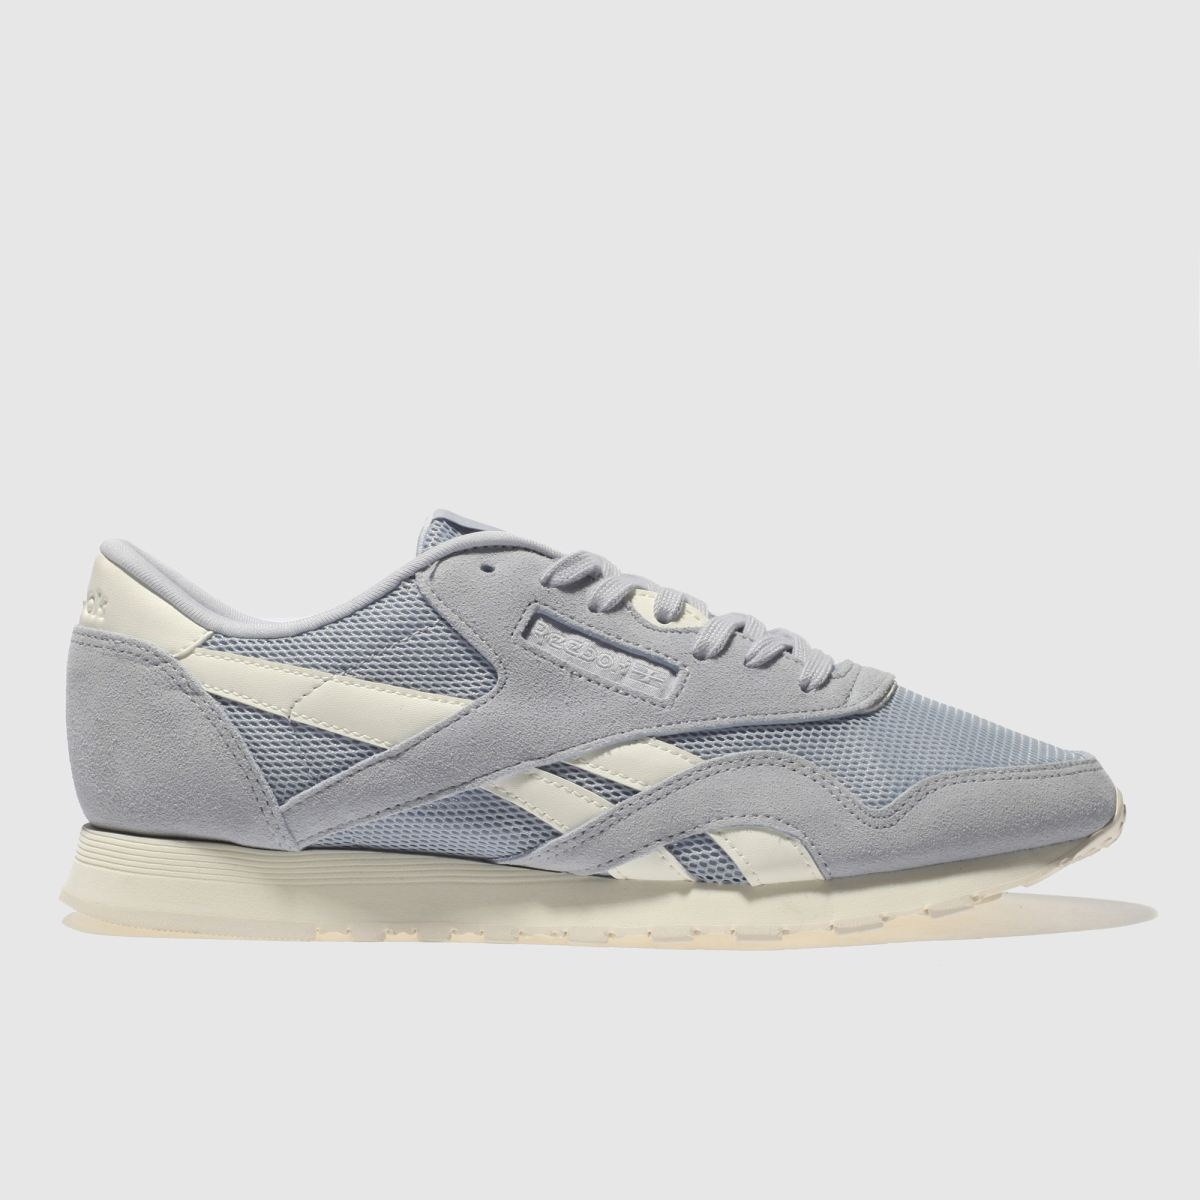 Reebok Pale Blue Classic Nylon Cold Pastel Trainers